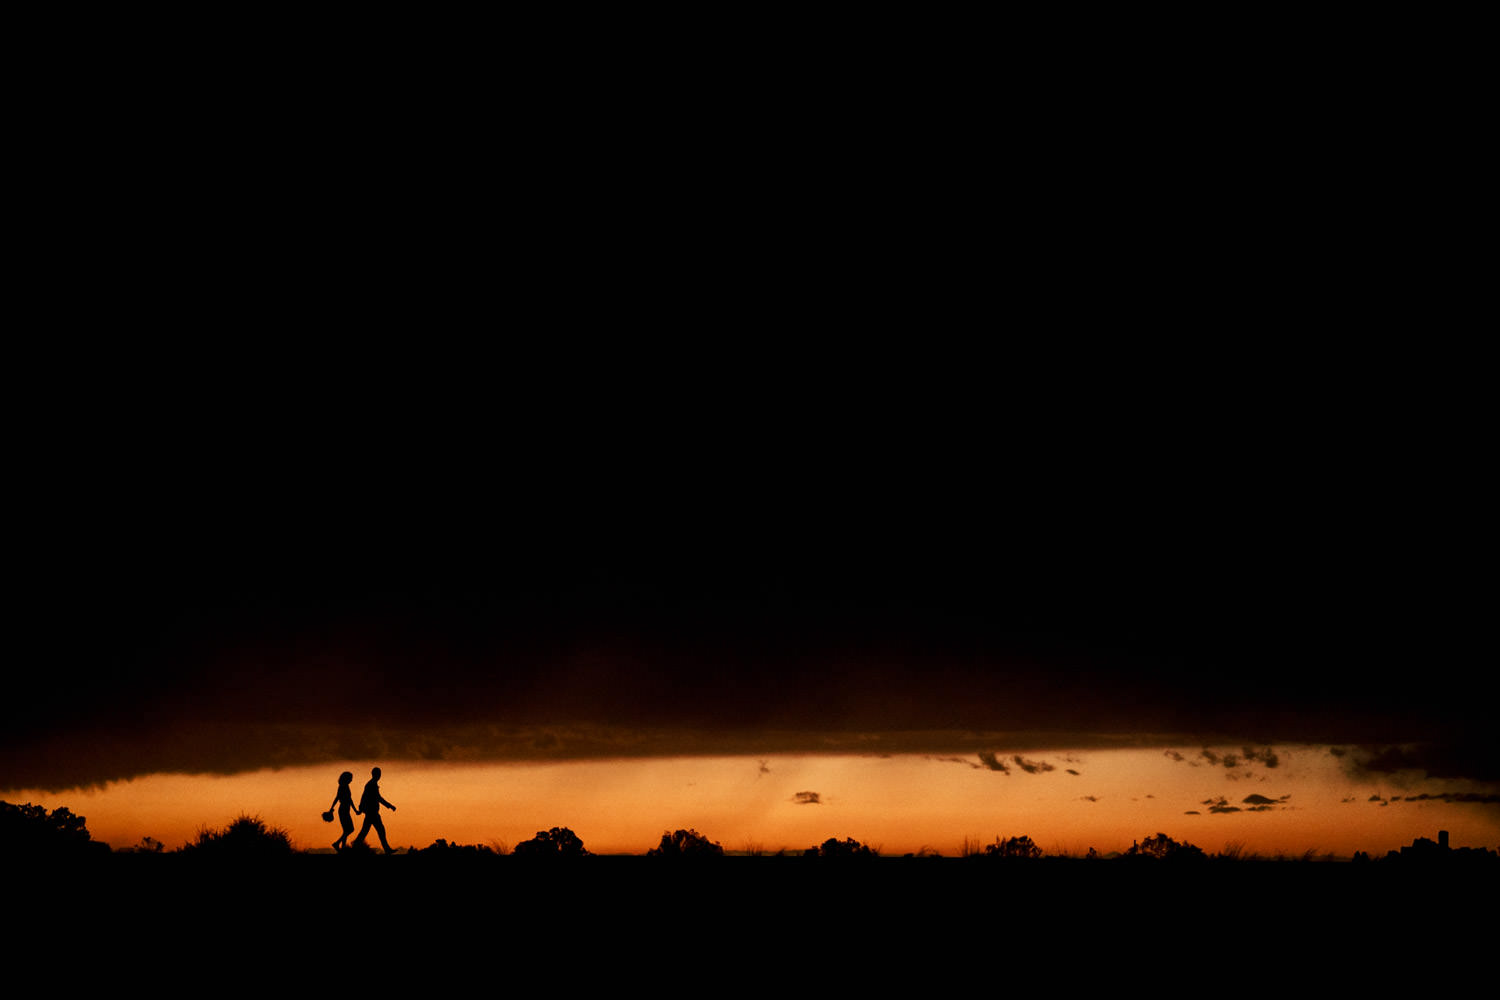 Arches engagement couple silhouette with orange glow sky photo